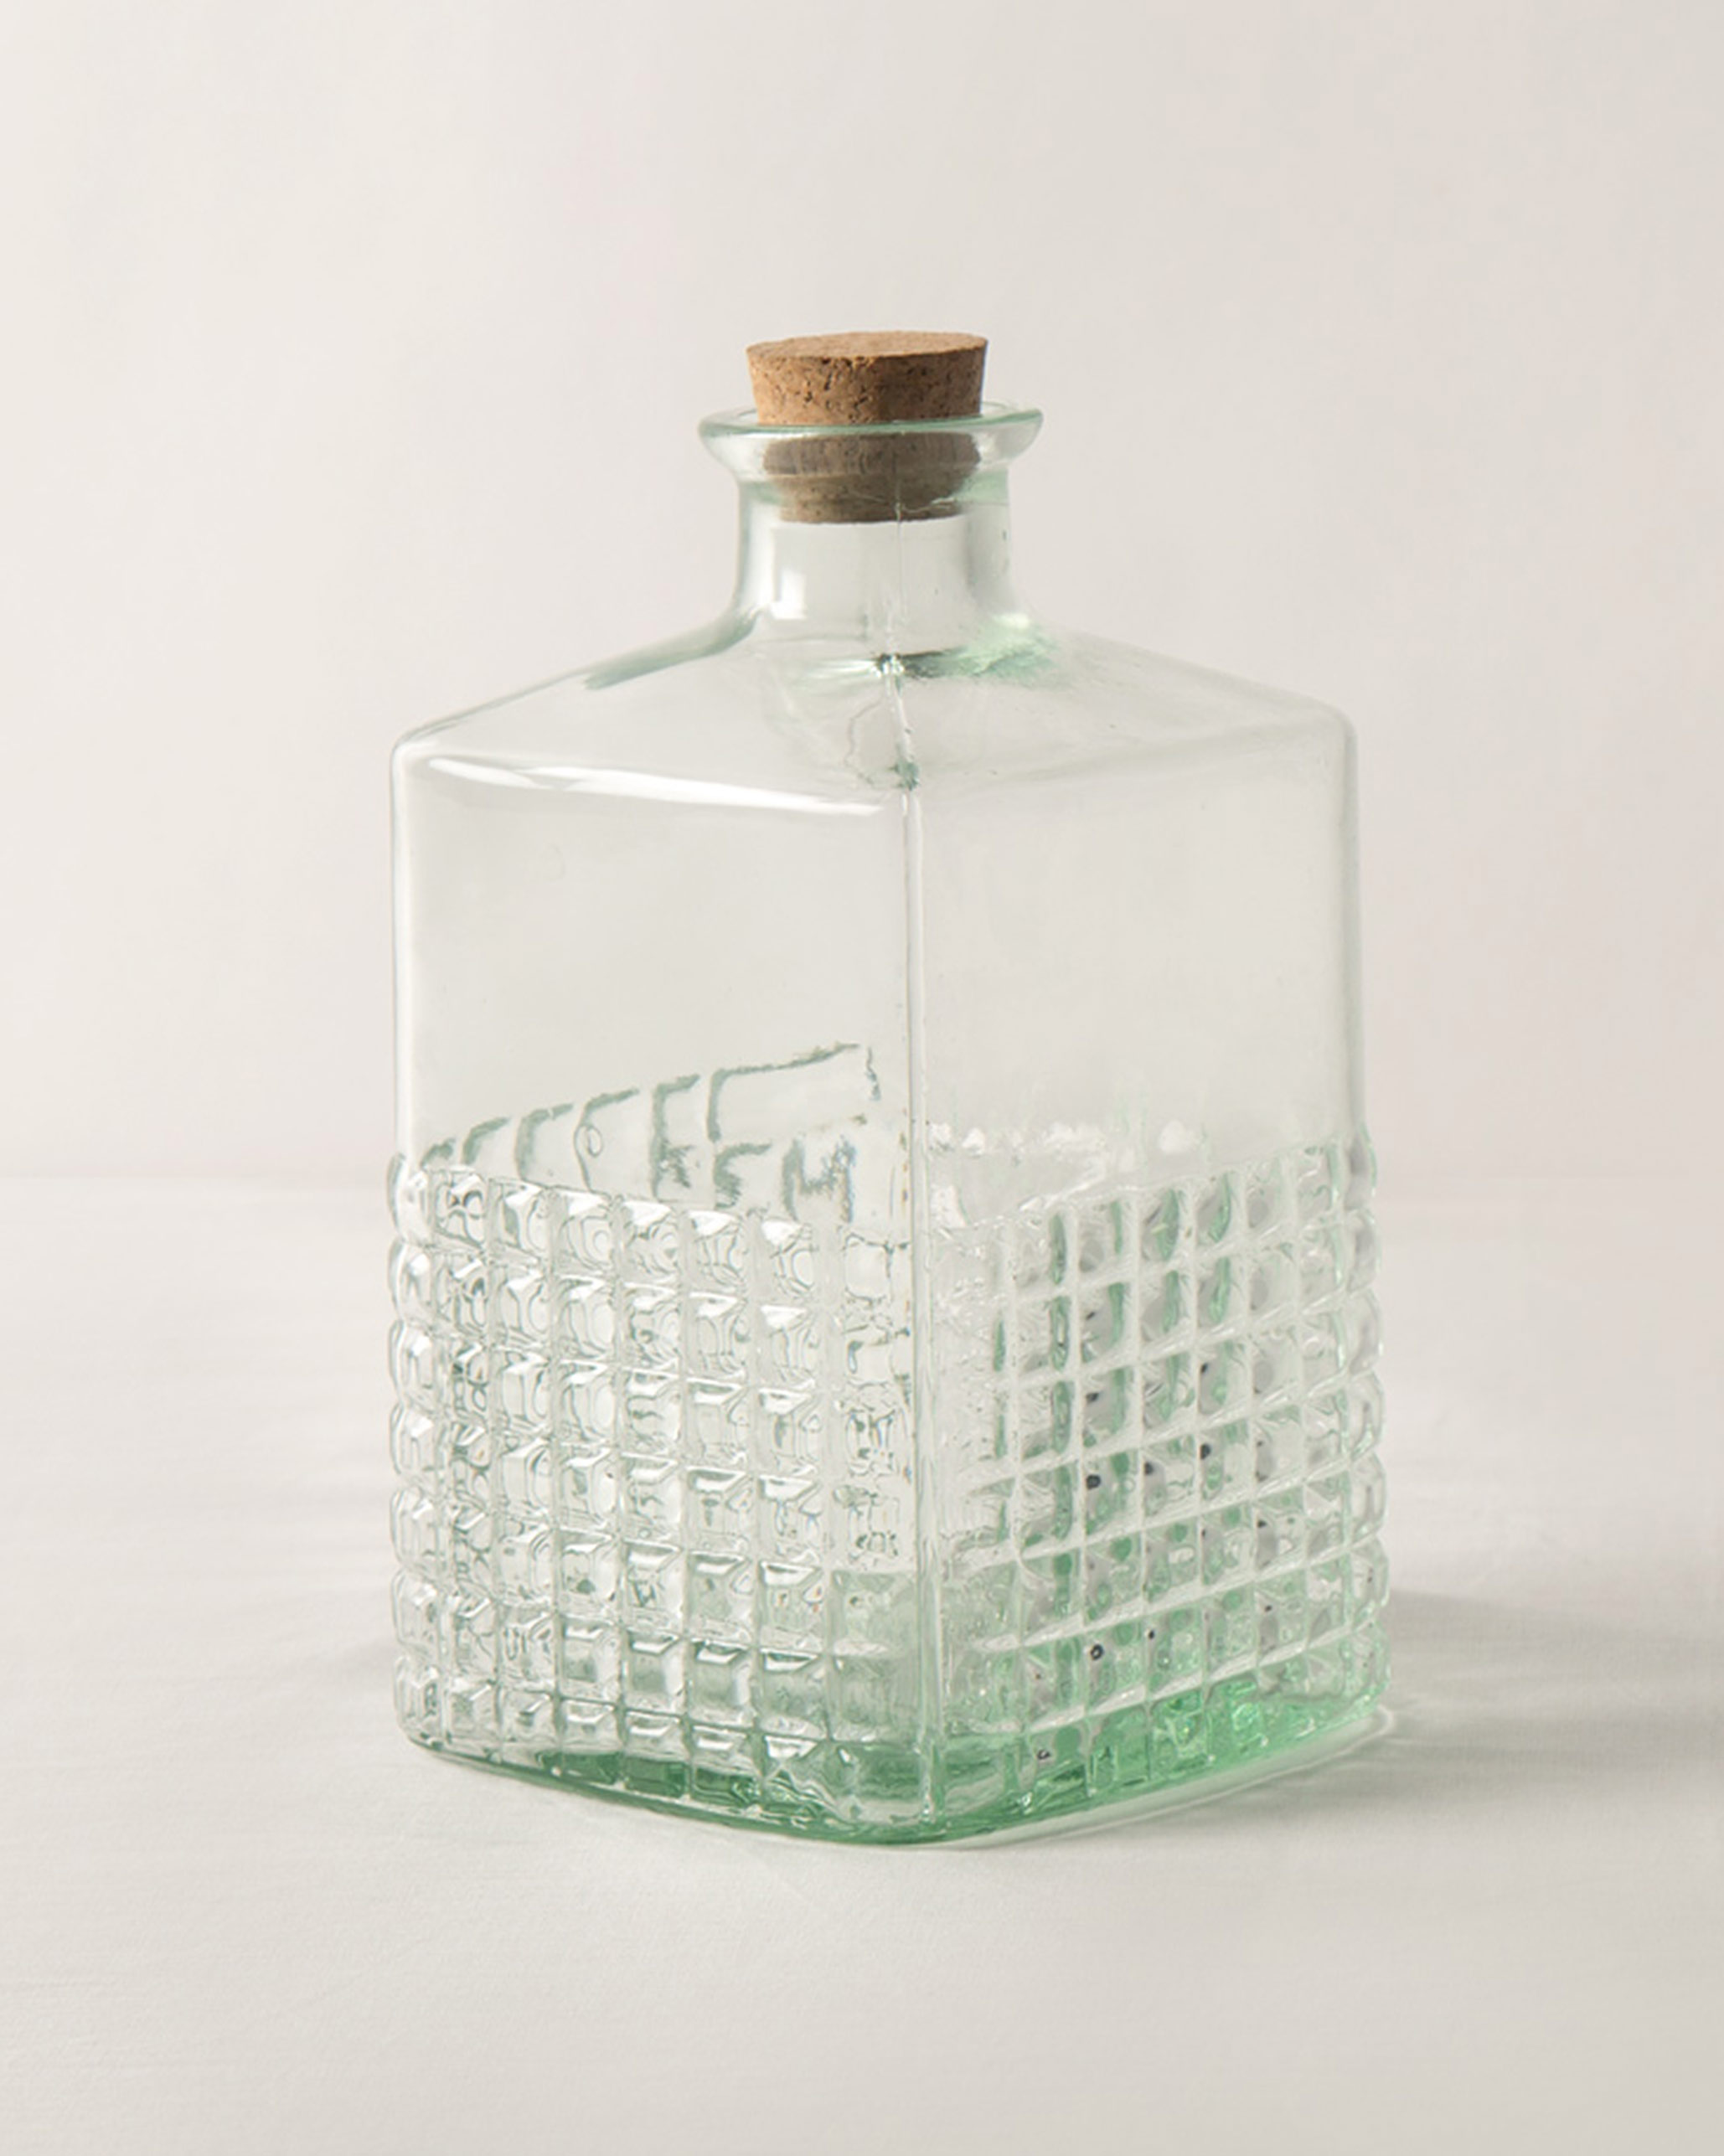 Outstanding Cut Glass At Home Gift - Home Decorating Ideas - svvodka.com